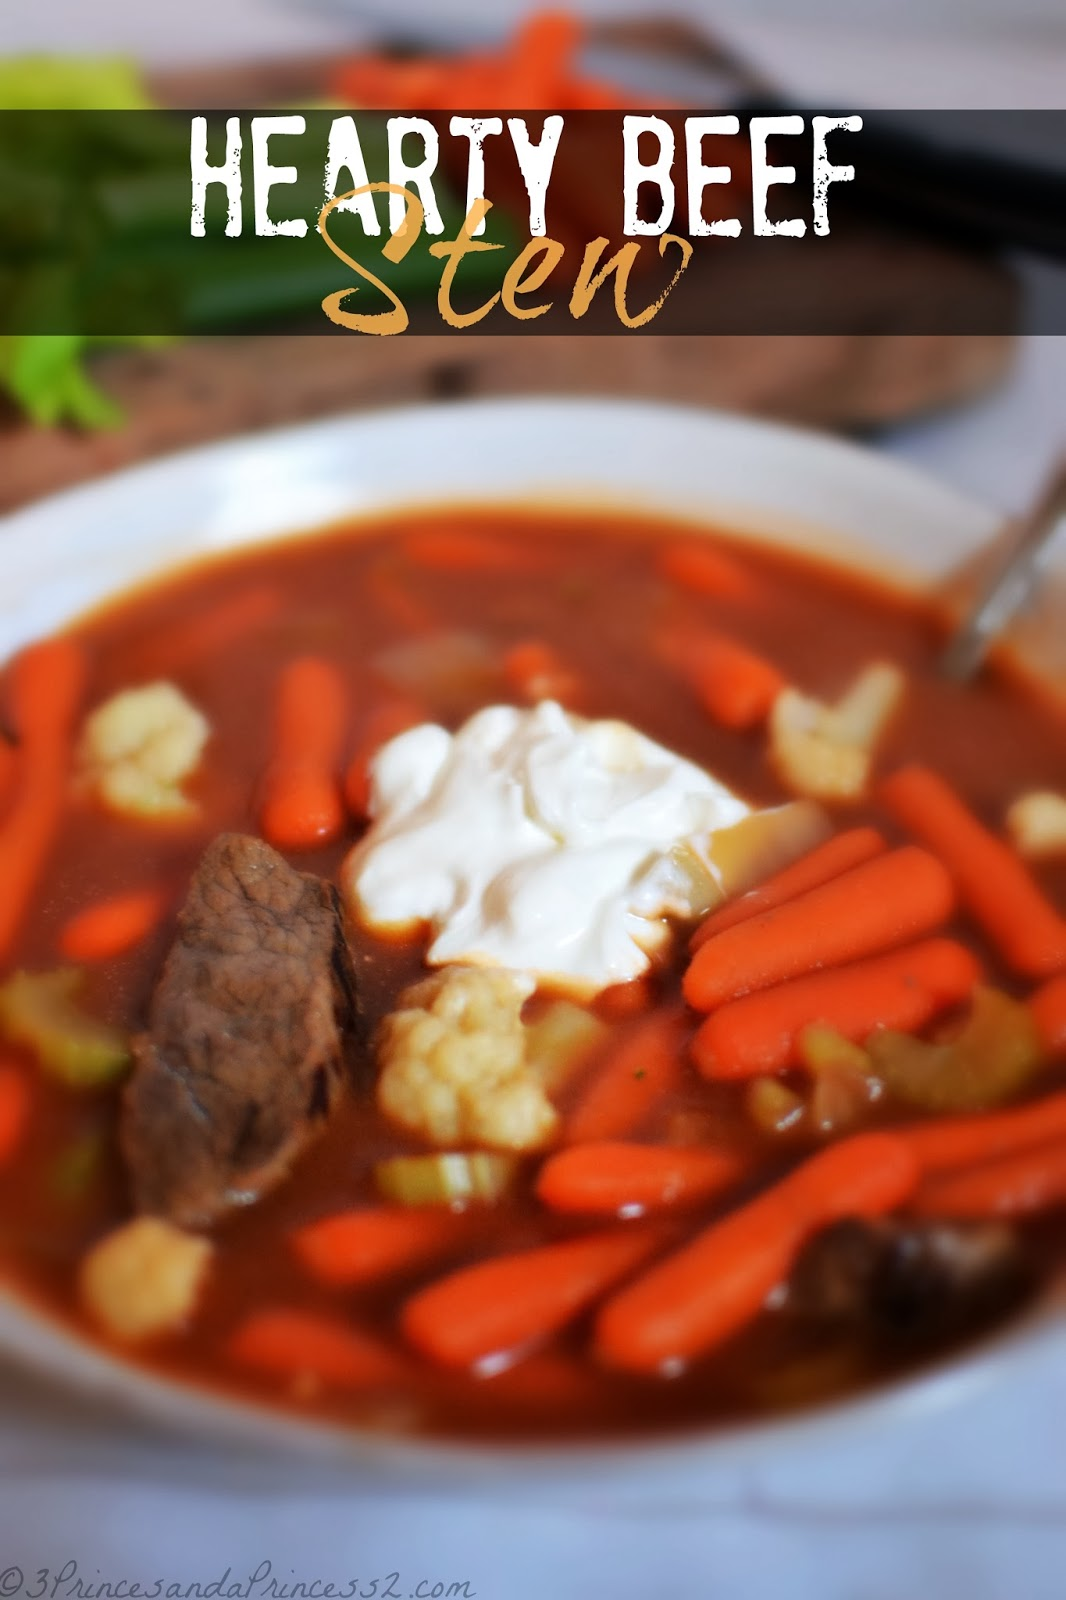 Hearty Beef Stew #RecipeRehab #Beef #MC